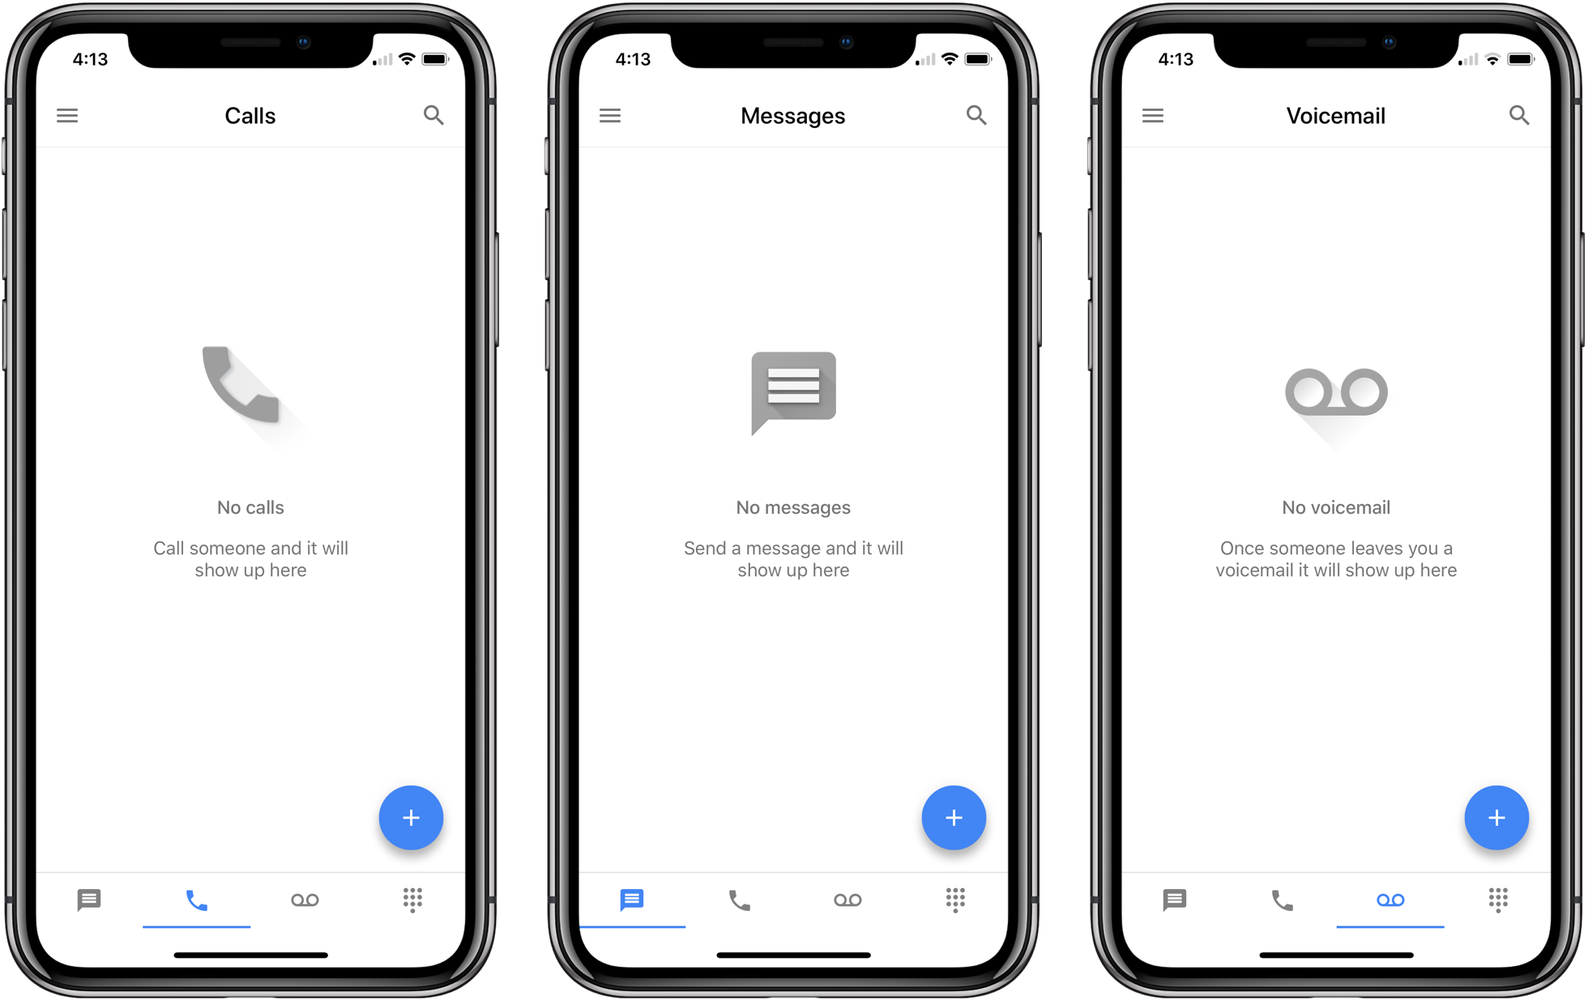 Google Voice finally updated with iPhone X optimization